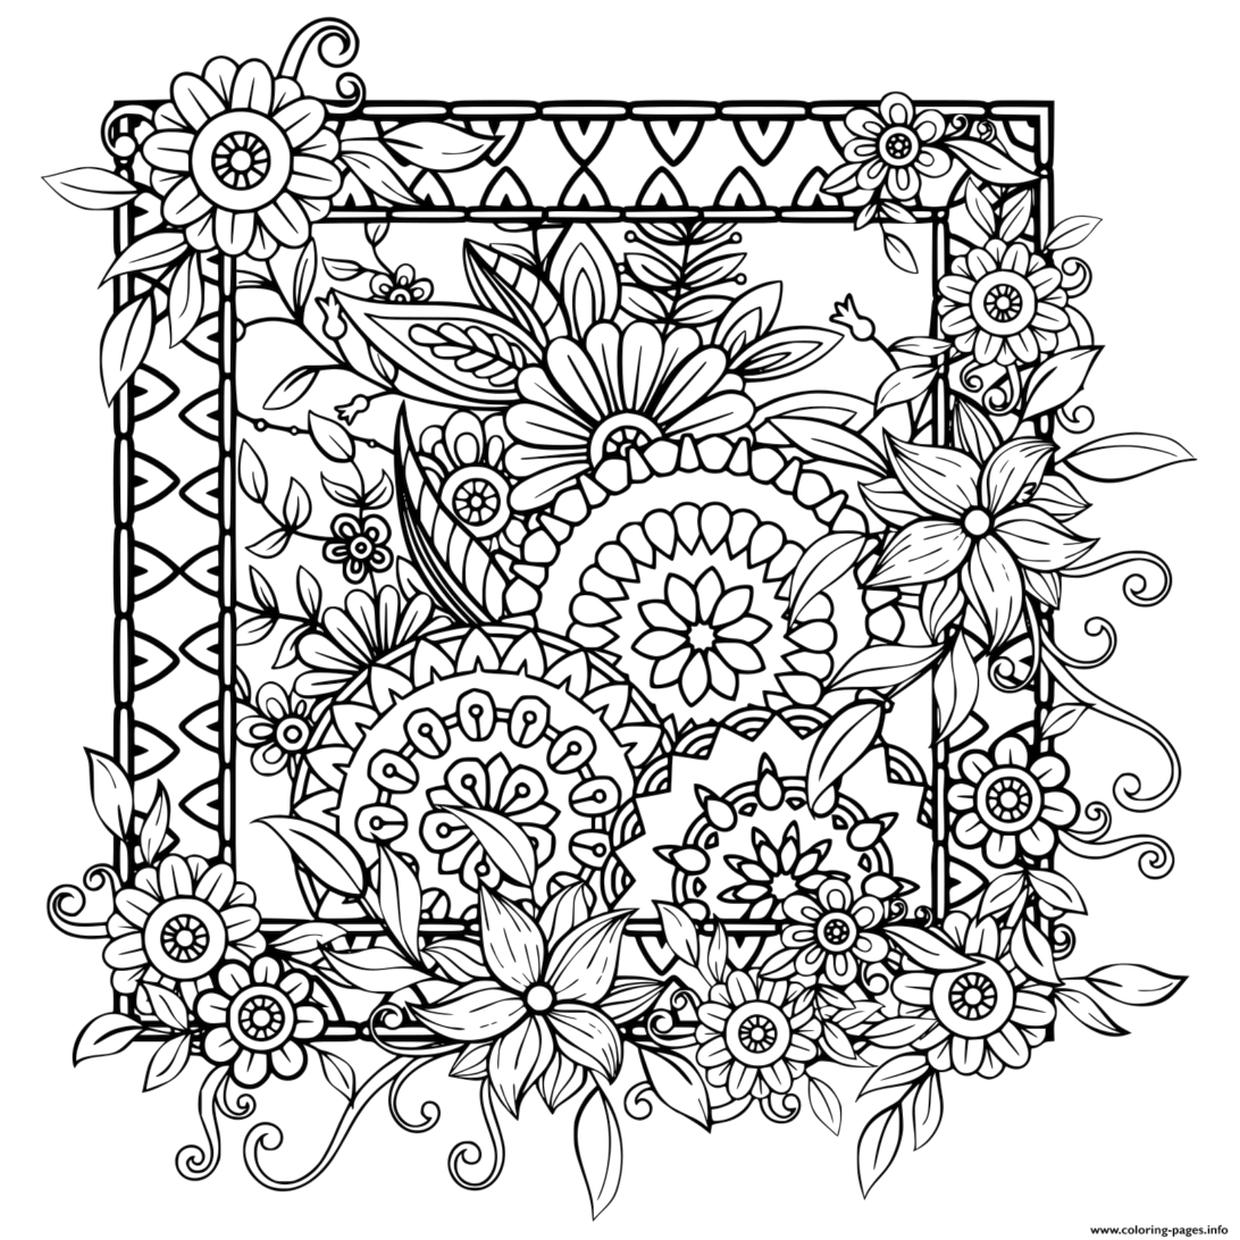 patterns for colouring for adults 20 free coloring pages for adults pdf adult coloring for for adults patterns colouring